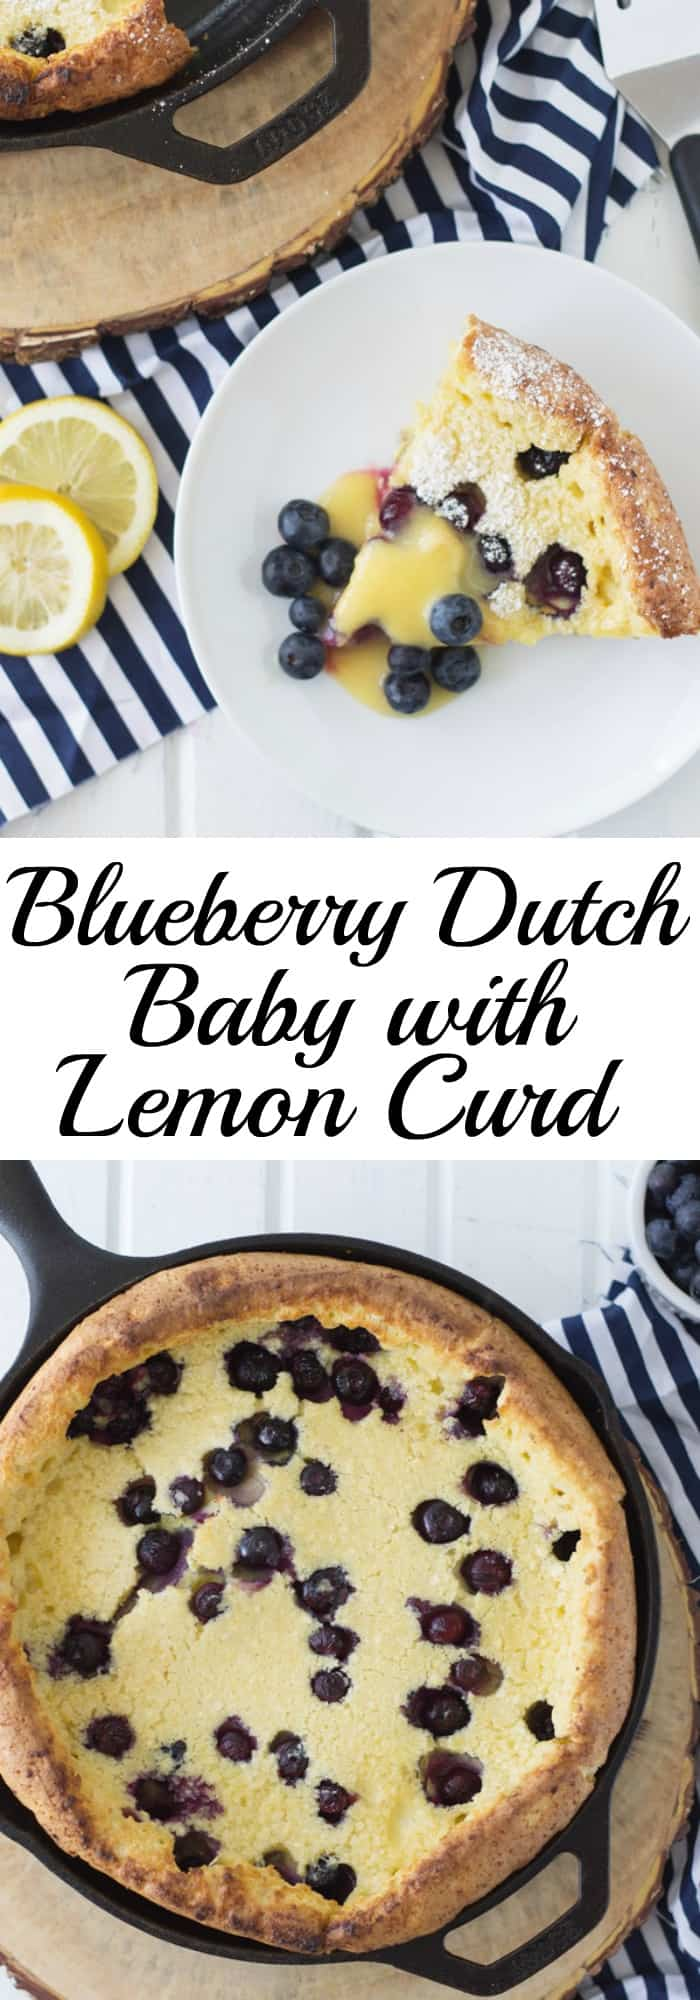 Blueberry Dutch Baby with Lemon Curd is an impressive yet very simple breakfast for any occasion! And topped with lemon curd just sends it over the top!! | www.countrysidecravings.com